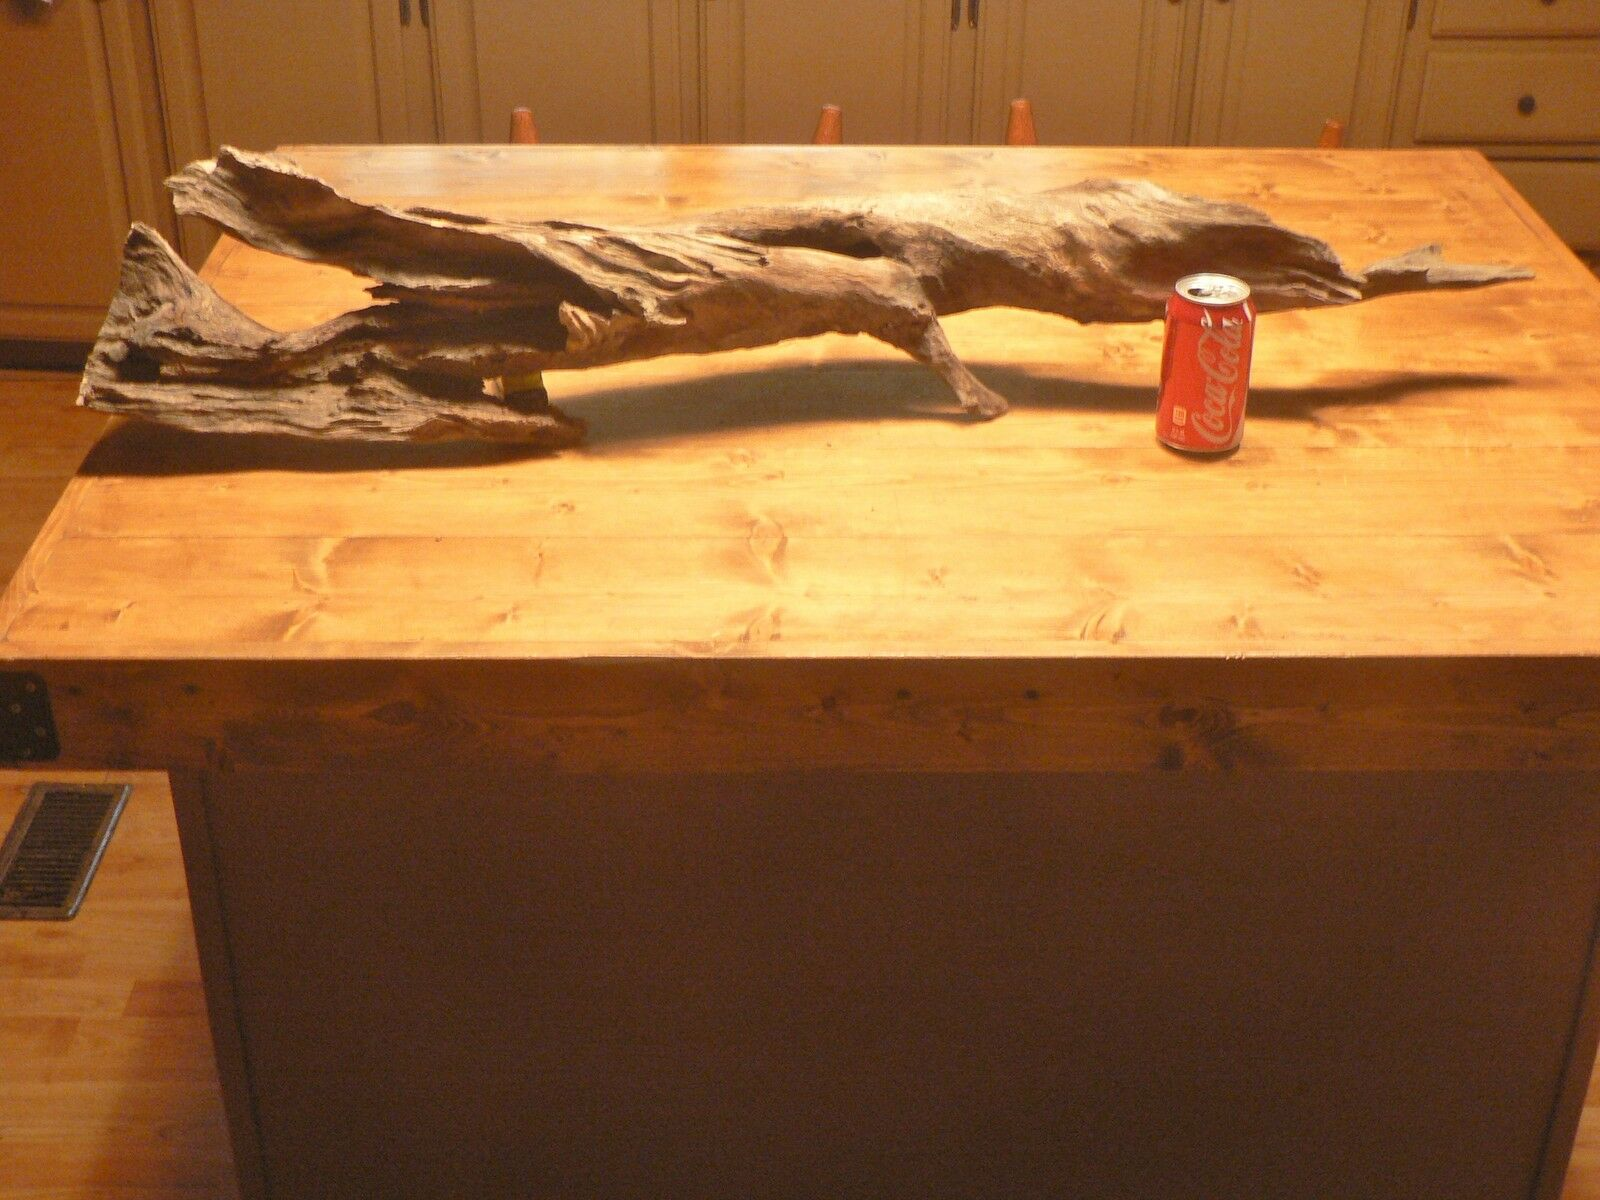 ... XL LARGE Fish Tank Reptile cage Decorations Home shelf rustic eBay